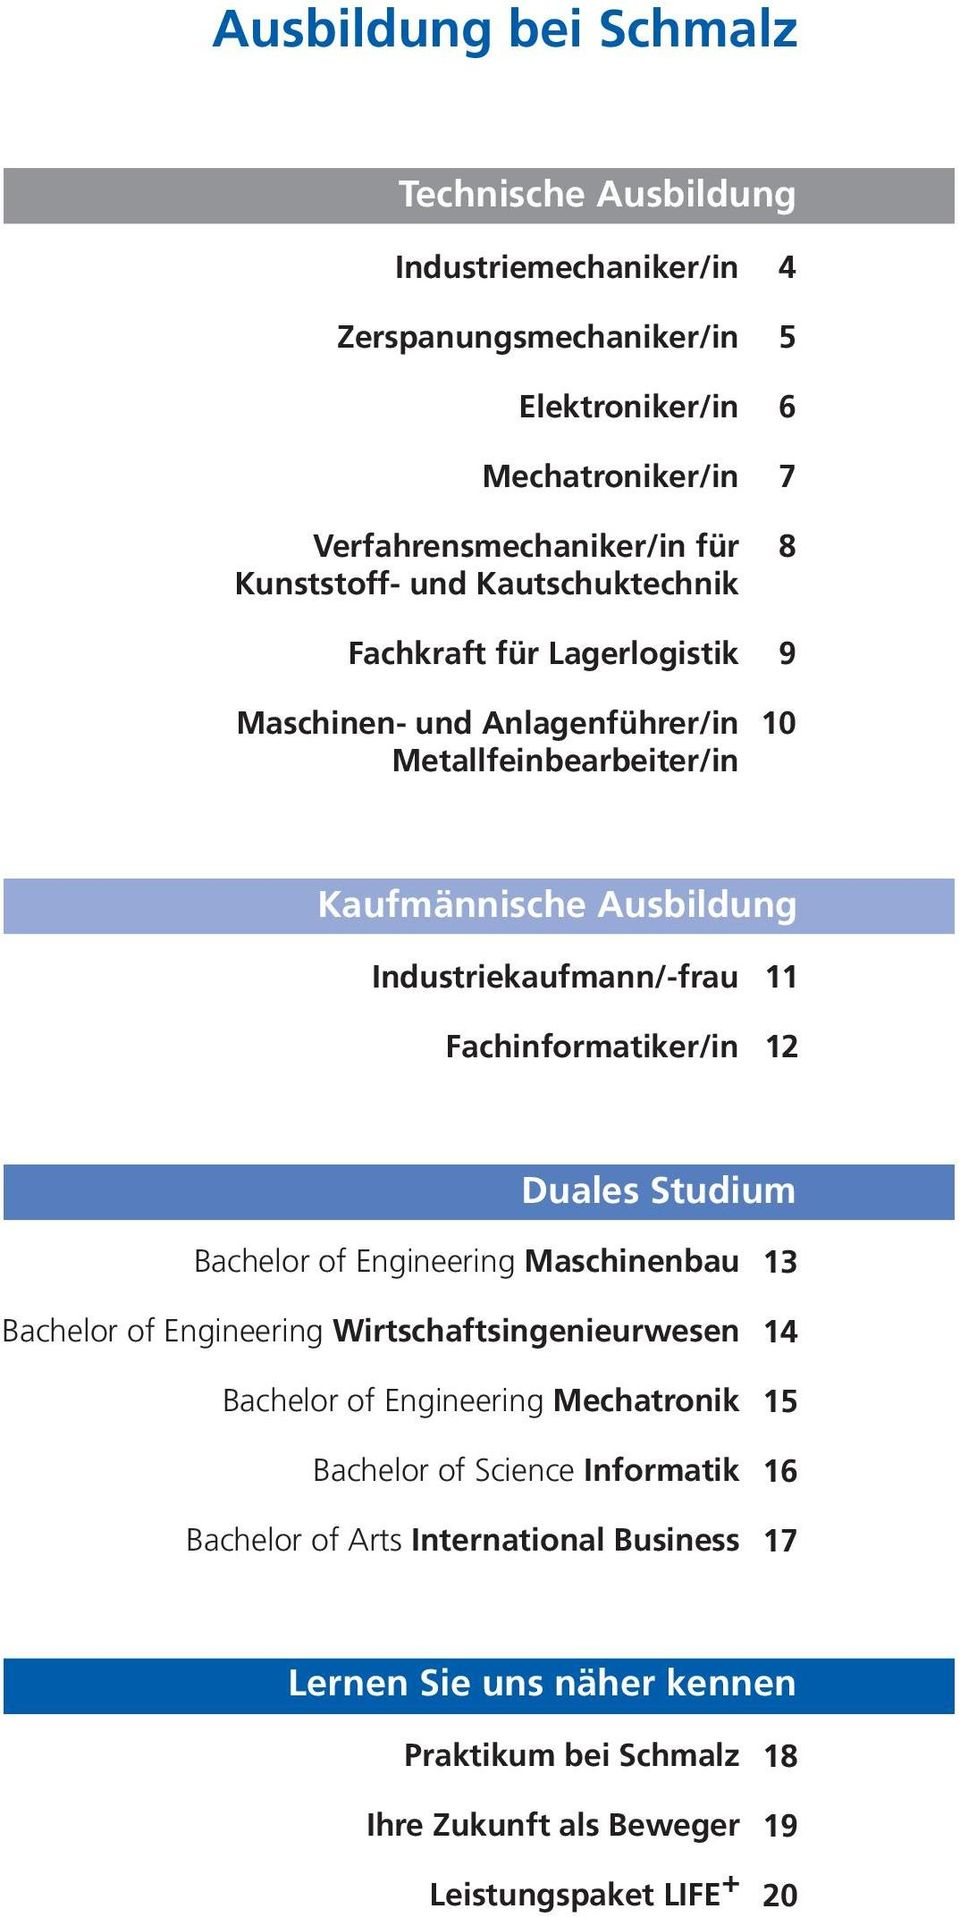 Fachinformatiker/in 11 12 Duales Studium Bachelor of Engineering Maschinenbau Bachelor of Engineering Wirtschaftsingenieurwesen Bachelor of Engineering Mechatronik Bachelor